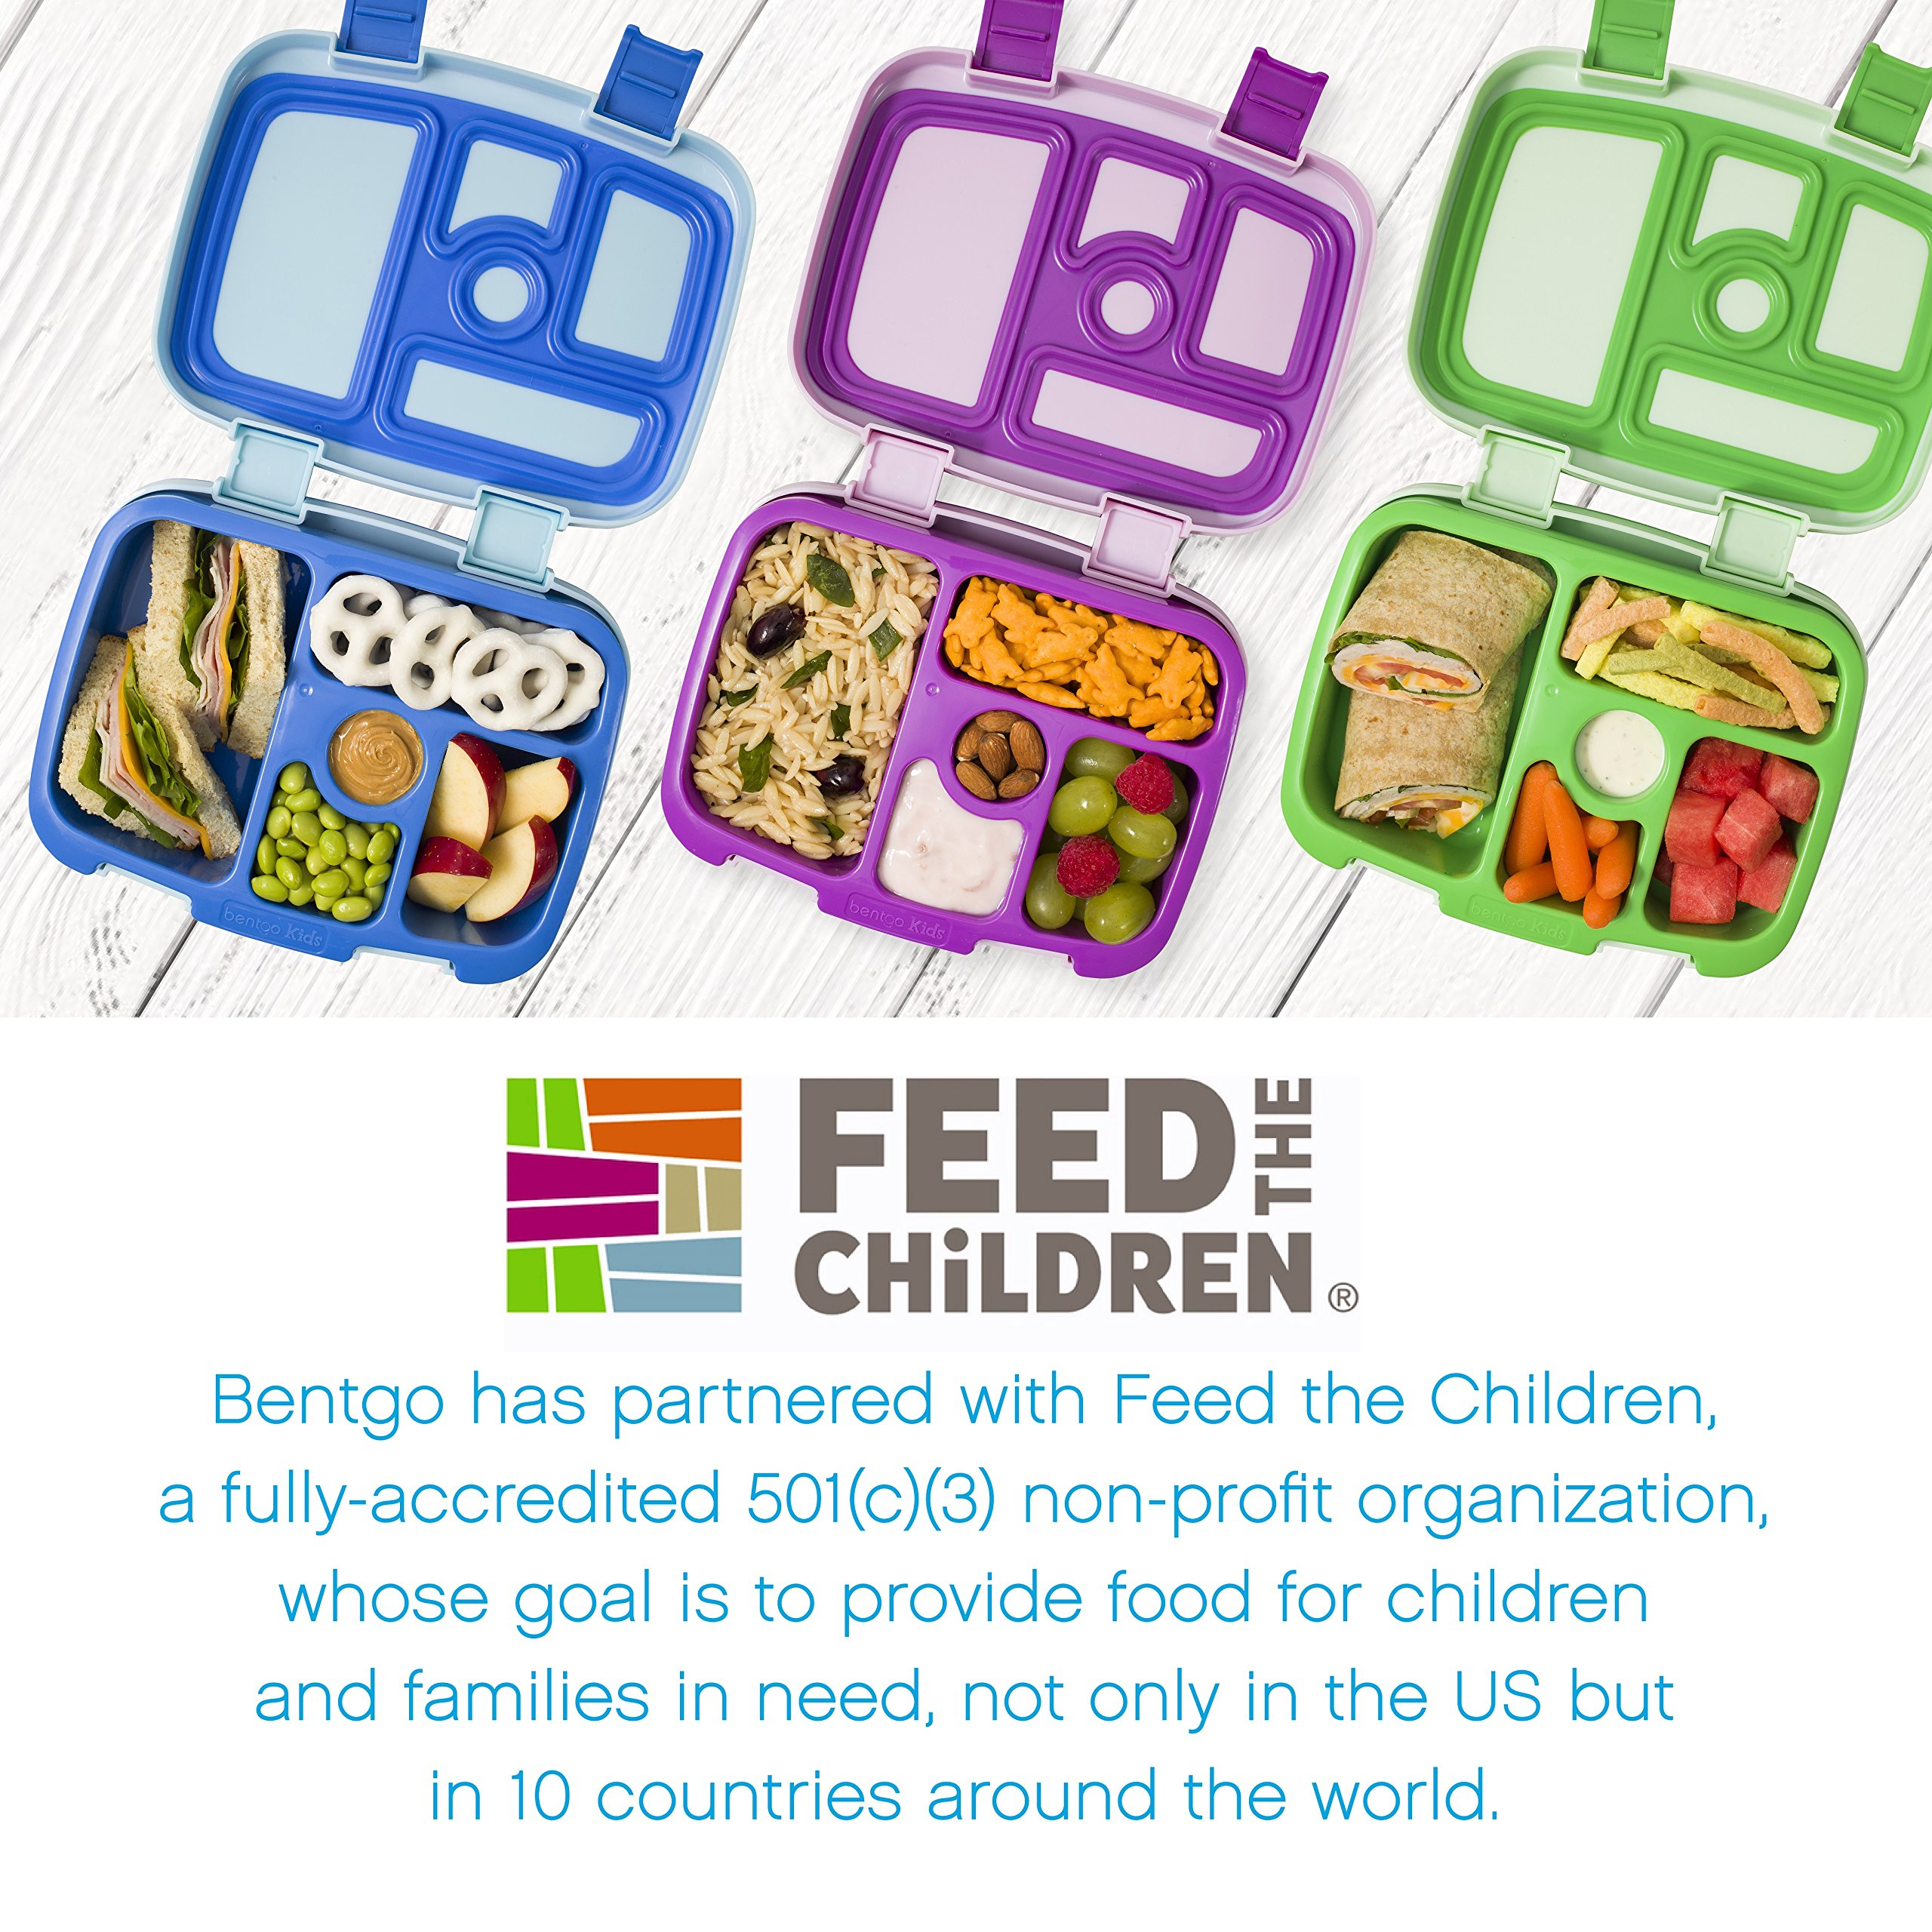 Bentgo Kids Childrens Lunch Box - Bento-Styled Lunch Solution Offers Durable, Leak-Proof, On-the-Go Meal and Snack Packing by Bentgo (Image #6)